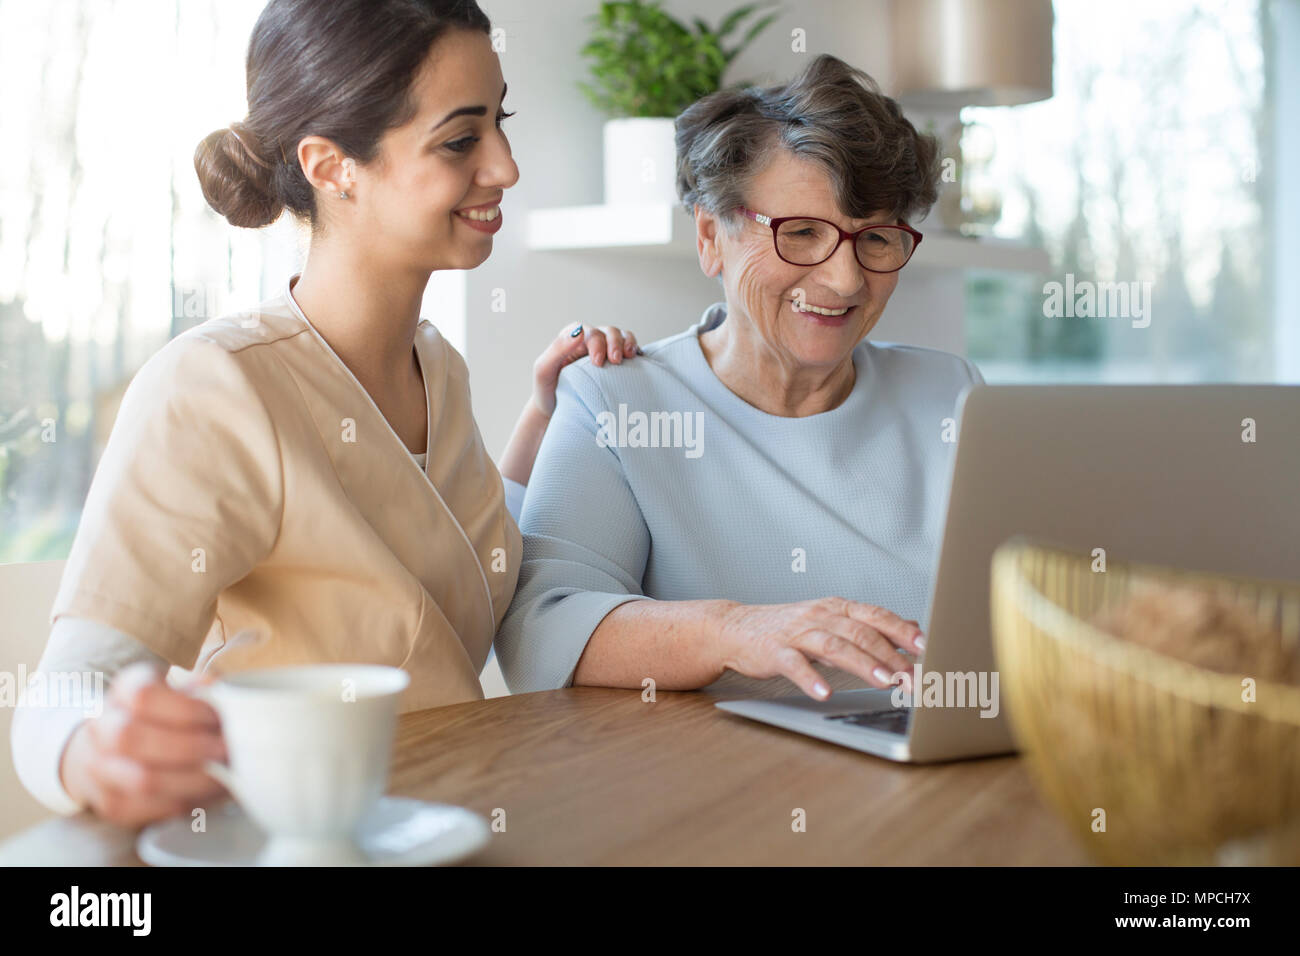 Tender caretaker closing the generation gap and teaching a smiling senior woman the use of Internet on a laptop while sitting by a table in a bright r - Stock Image